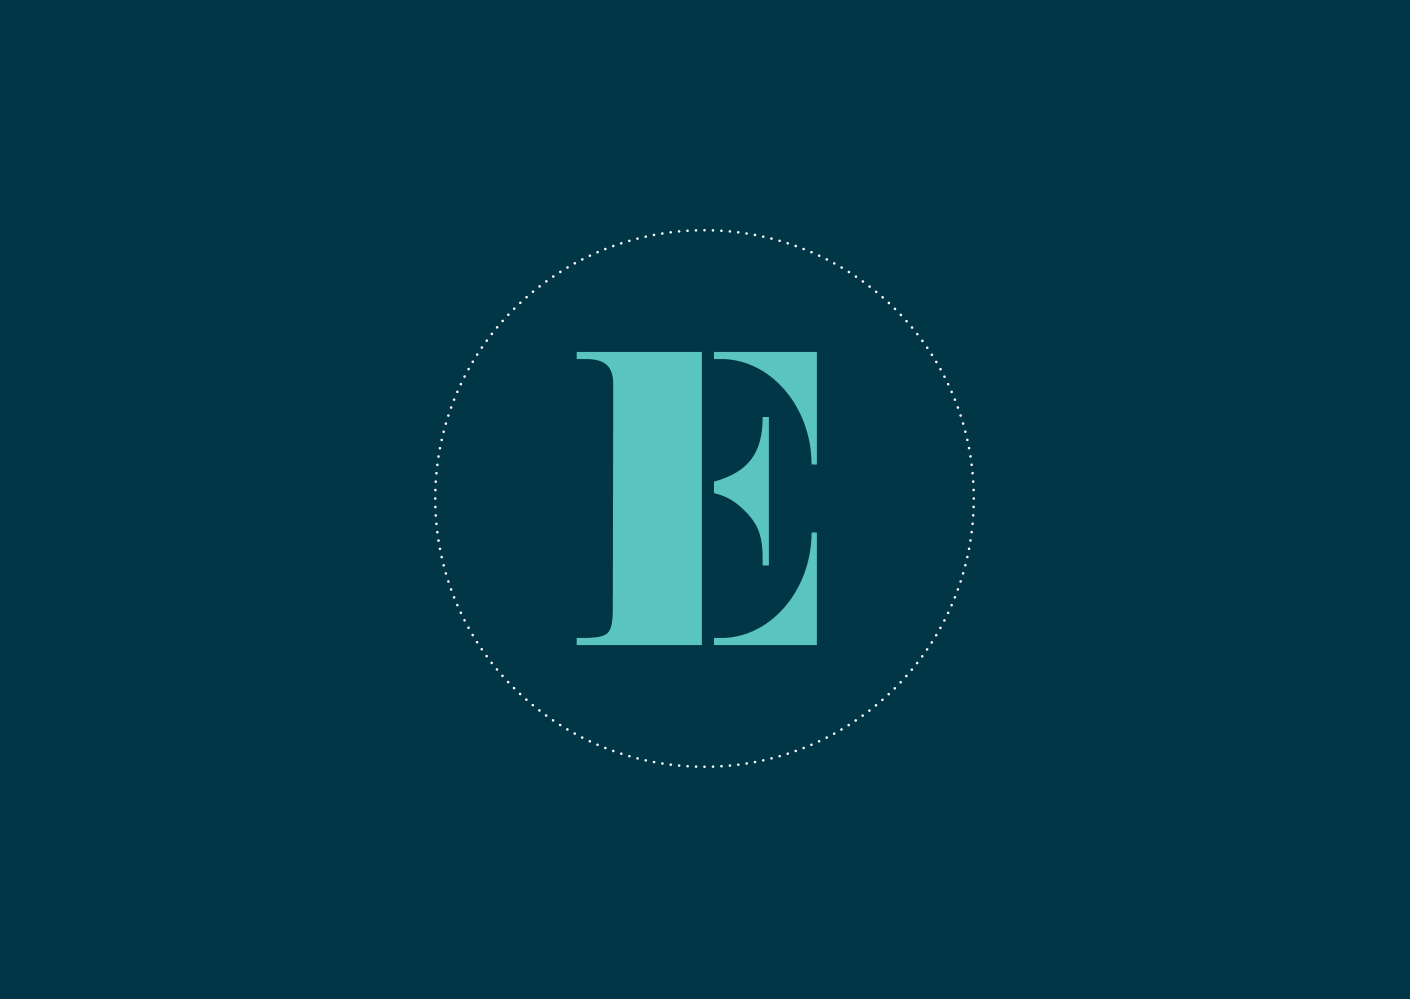 Elevation™ - strategic brand design and rebranding for growing organisations